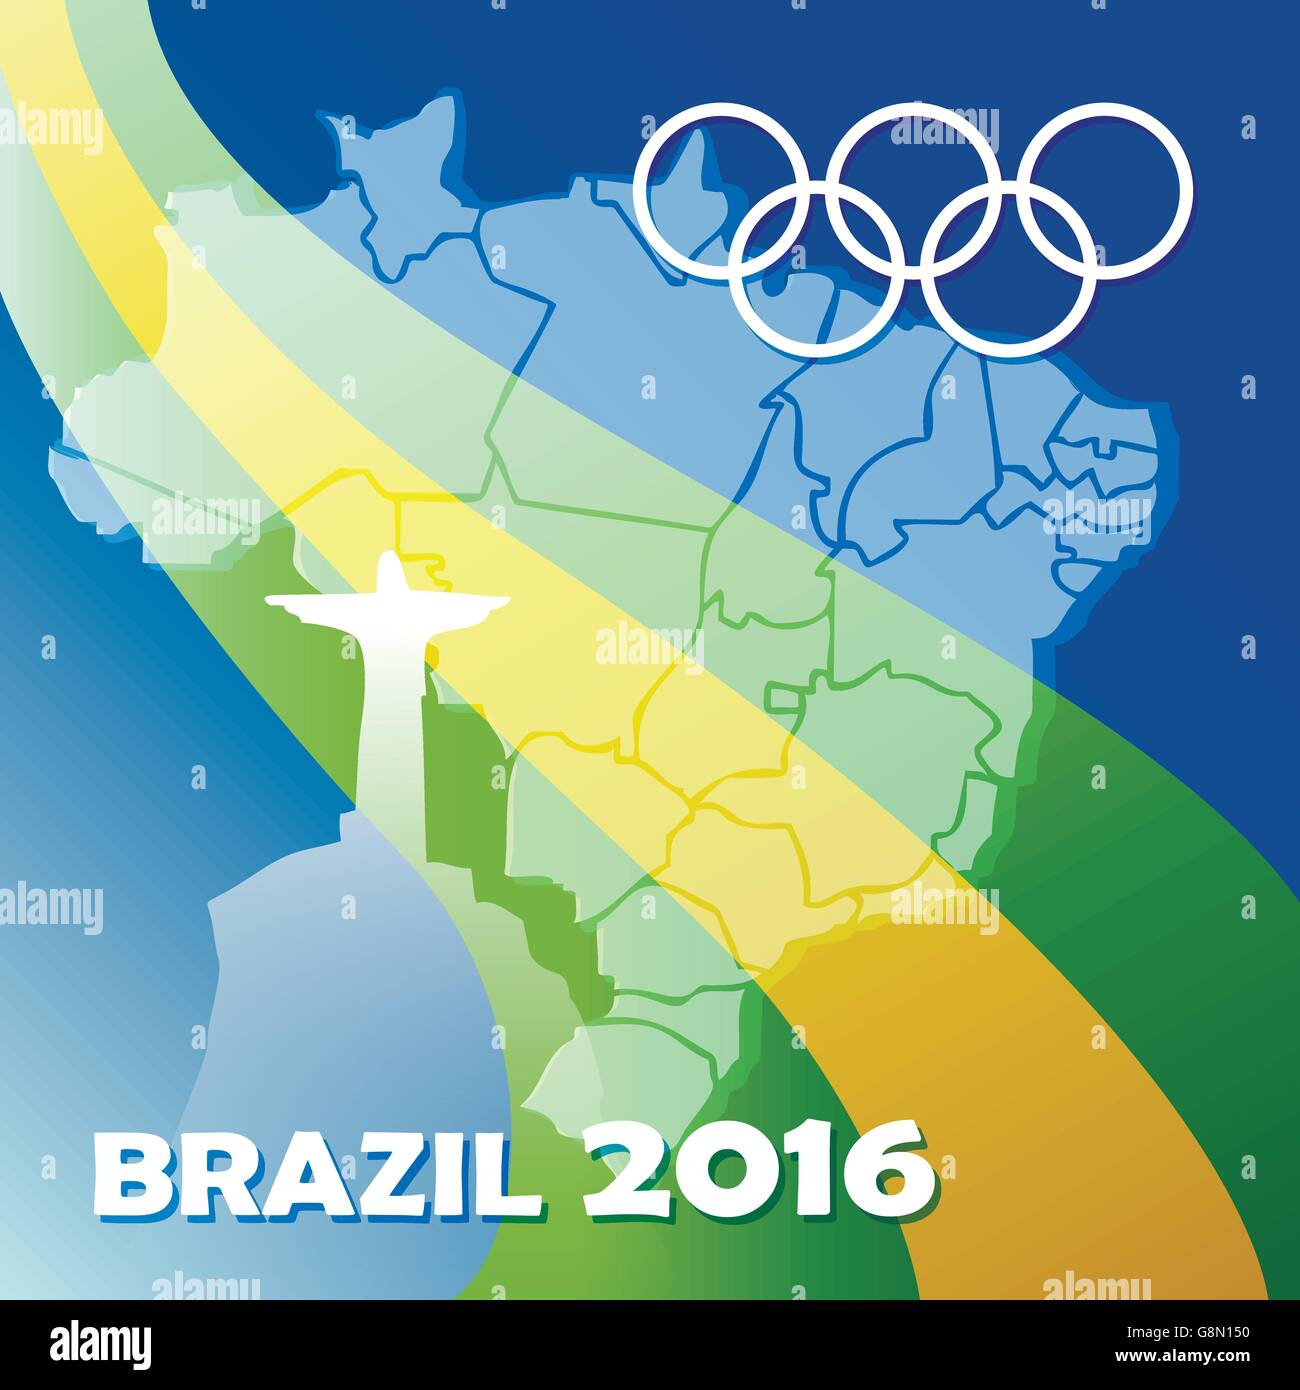 Colorful Brazil Olympic Games Poster. Olympic rings and national flag of Brazil against silhouette of country - Stock Vector